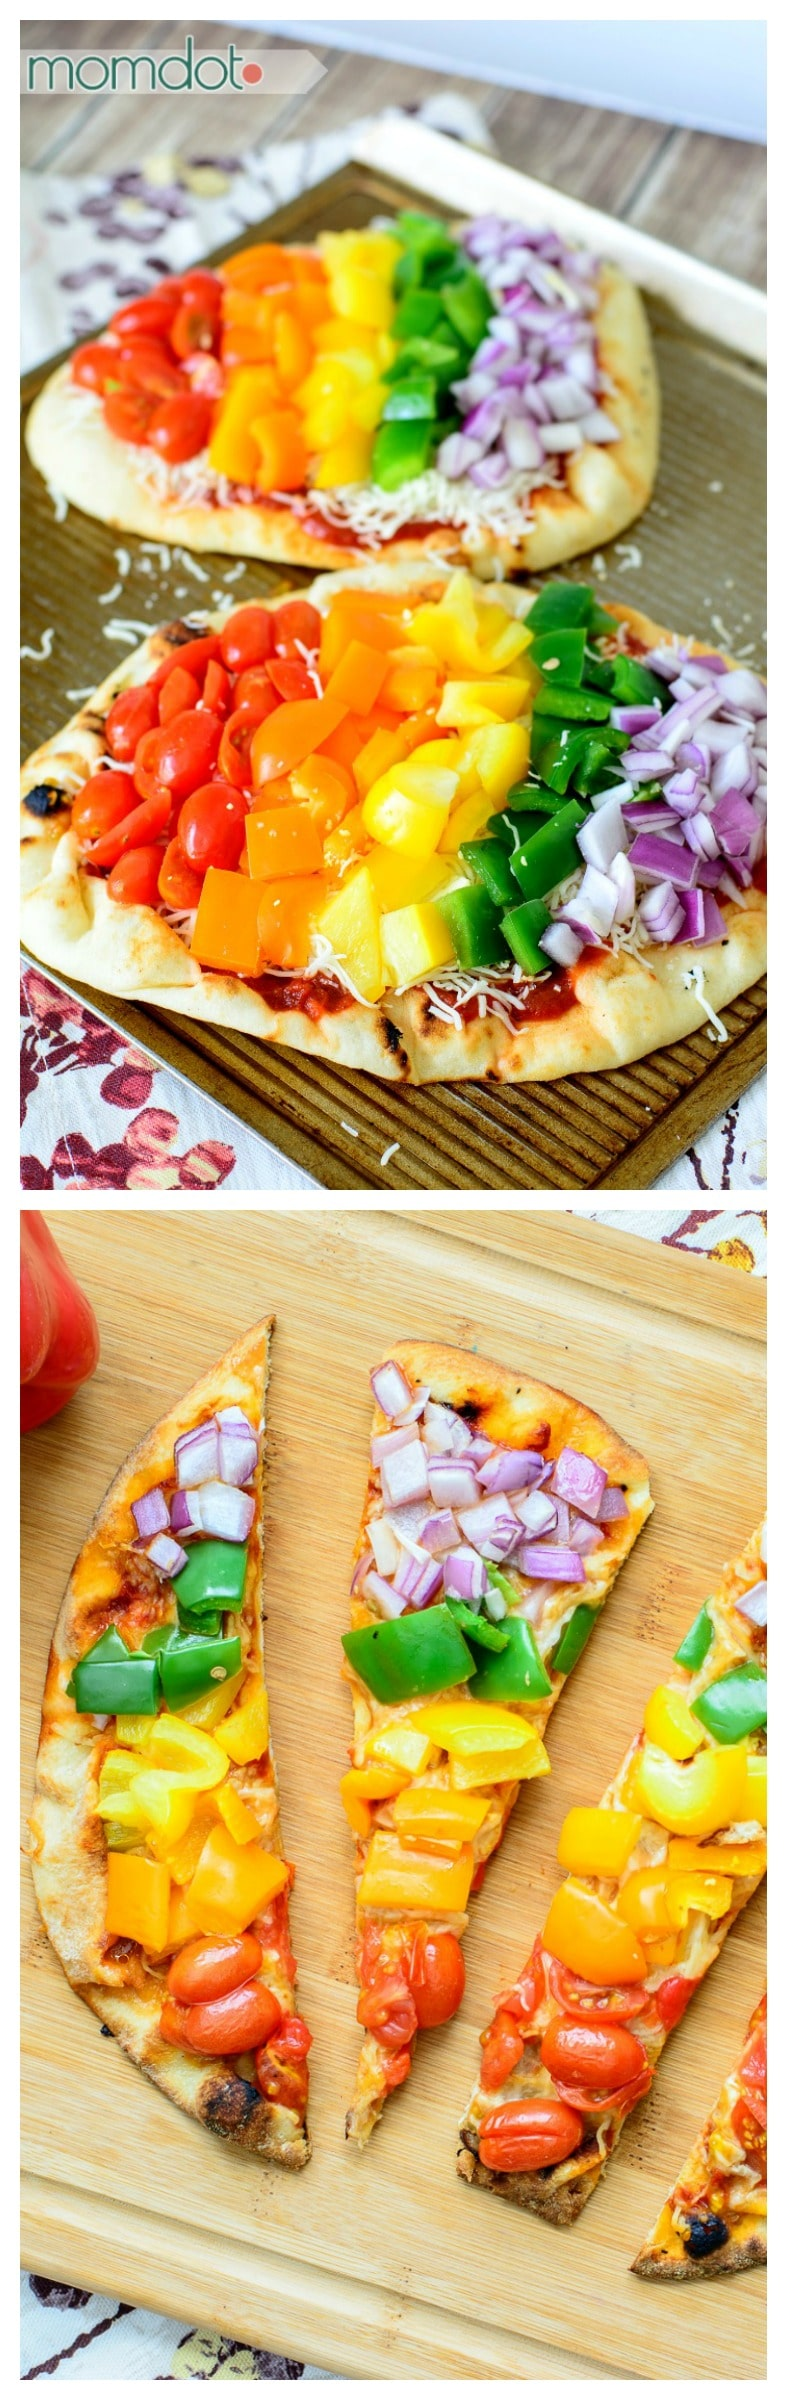 Rainbow Veggie Pizza Recipe - Grab this simple homemade flatbread pizza and thrill your family with a FUN and healthy way to eat dinner! No leftovers here...totally kid friendly.